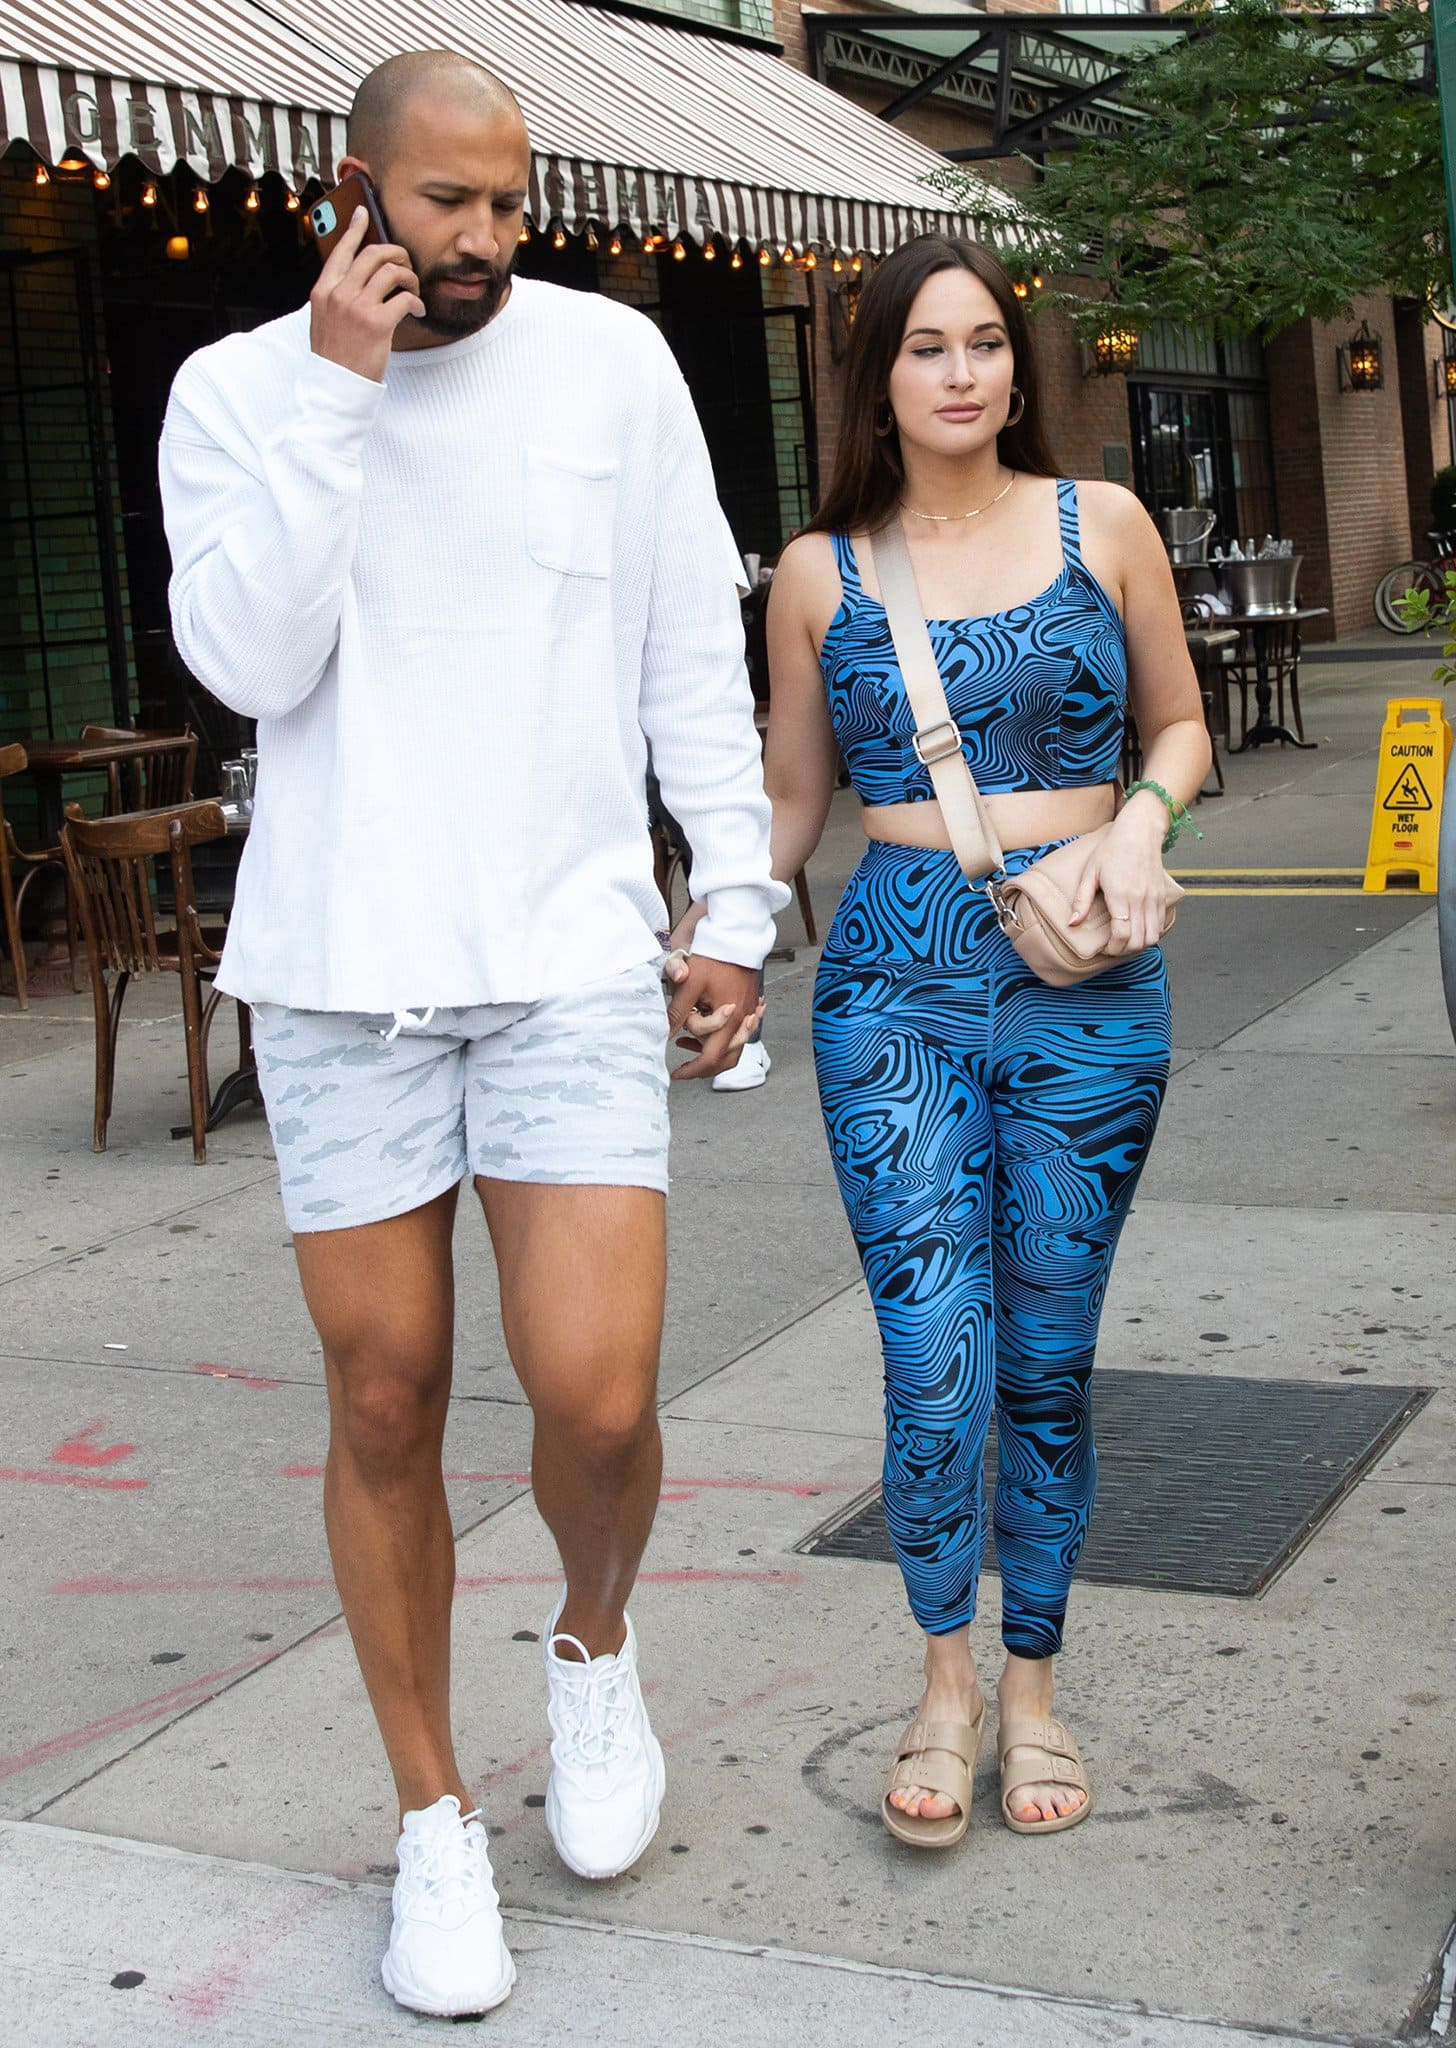 Kacey Musgraves steps out with new boyfriend Cole Schafer in New York City on June 20, 2021